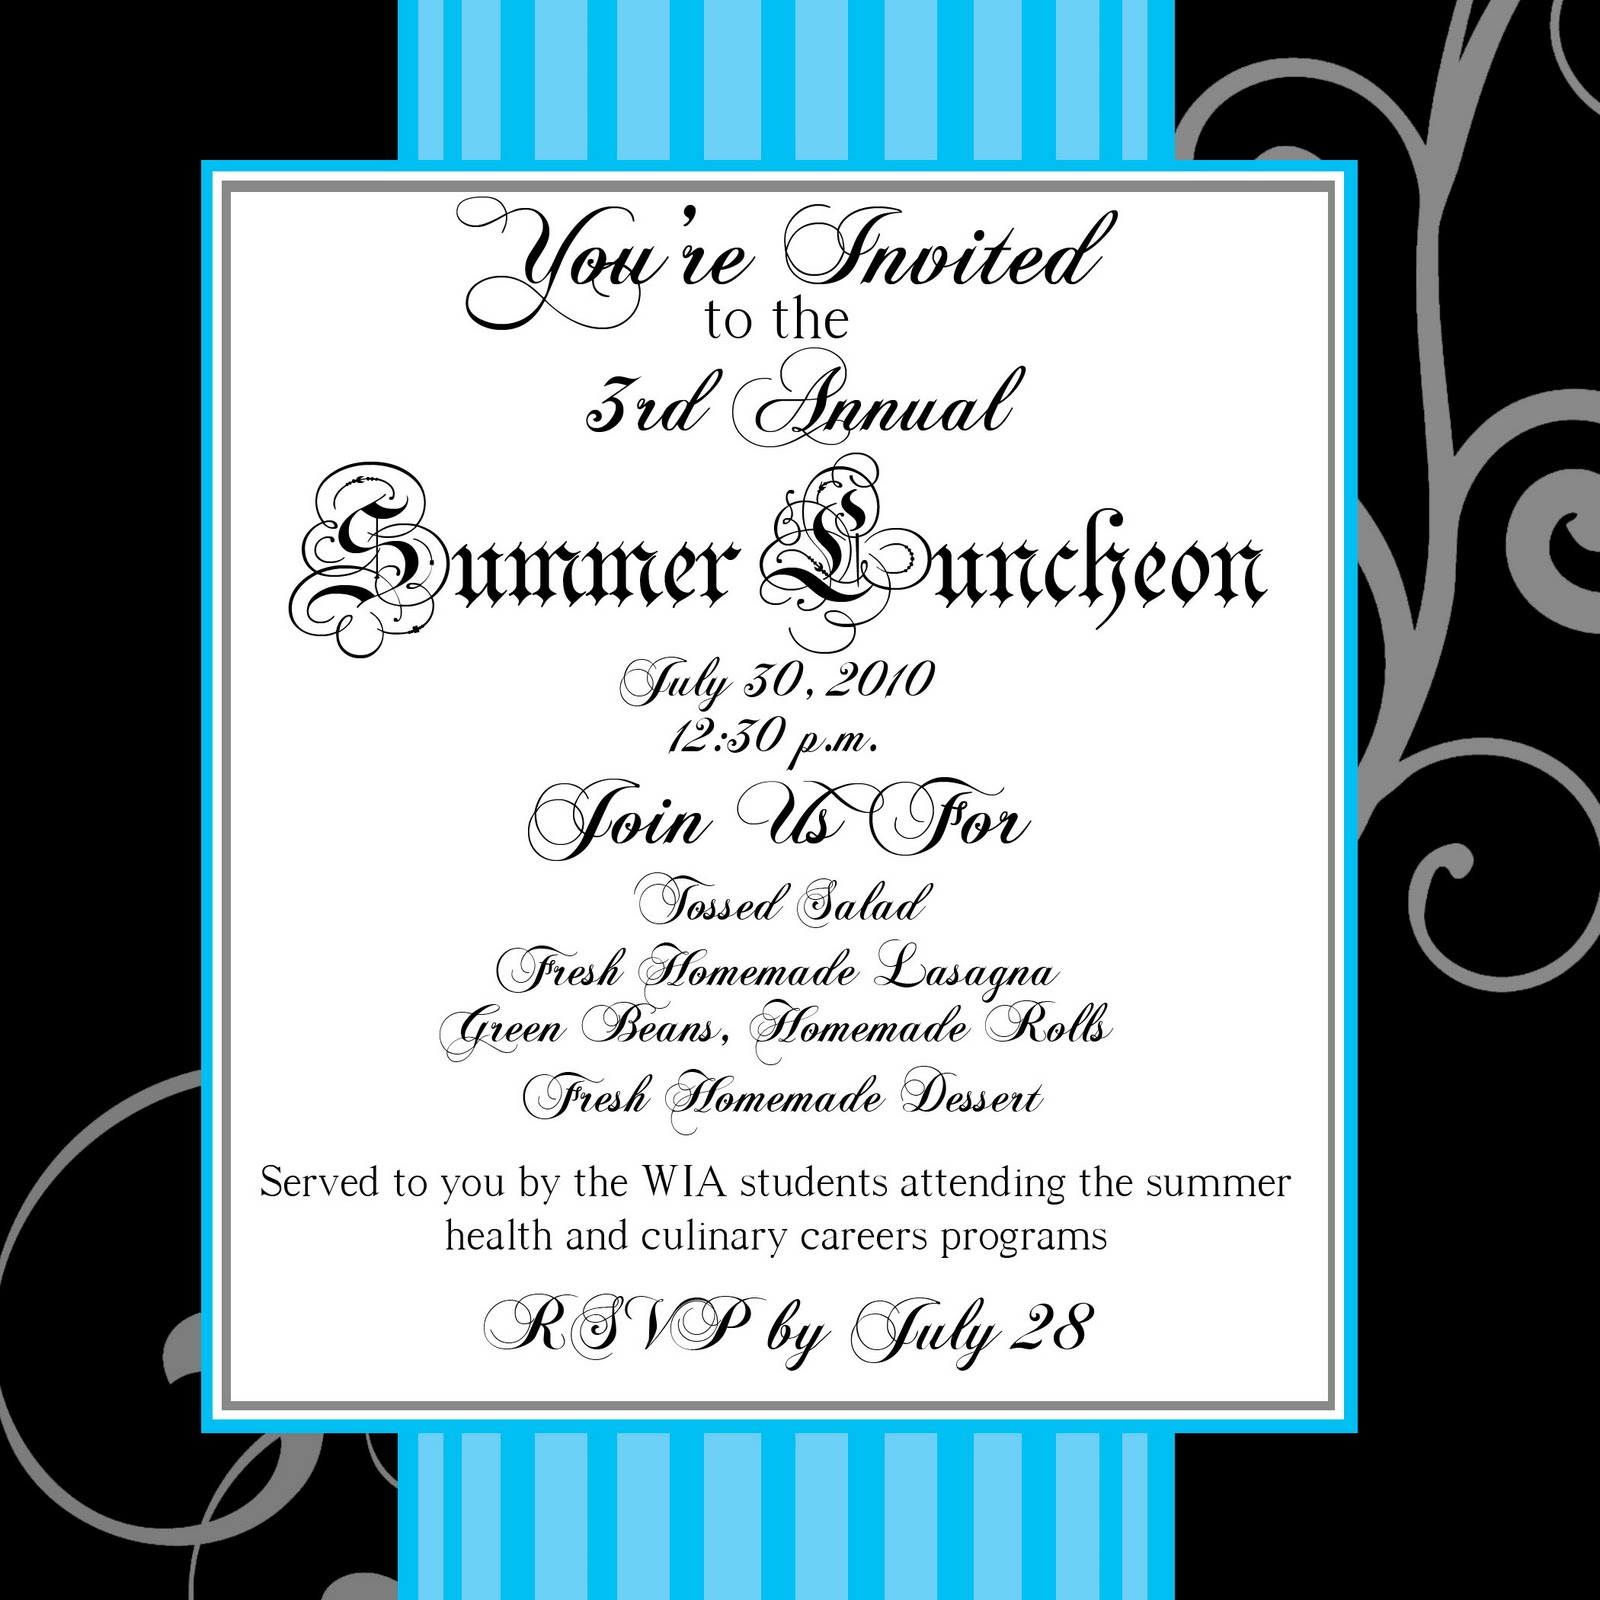 Ashley: Summer Luncheon Invitation